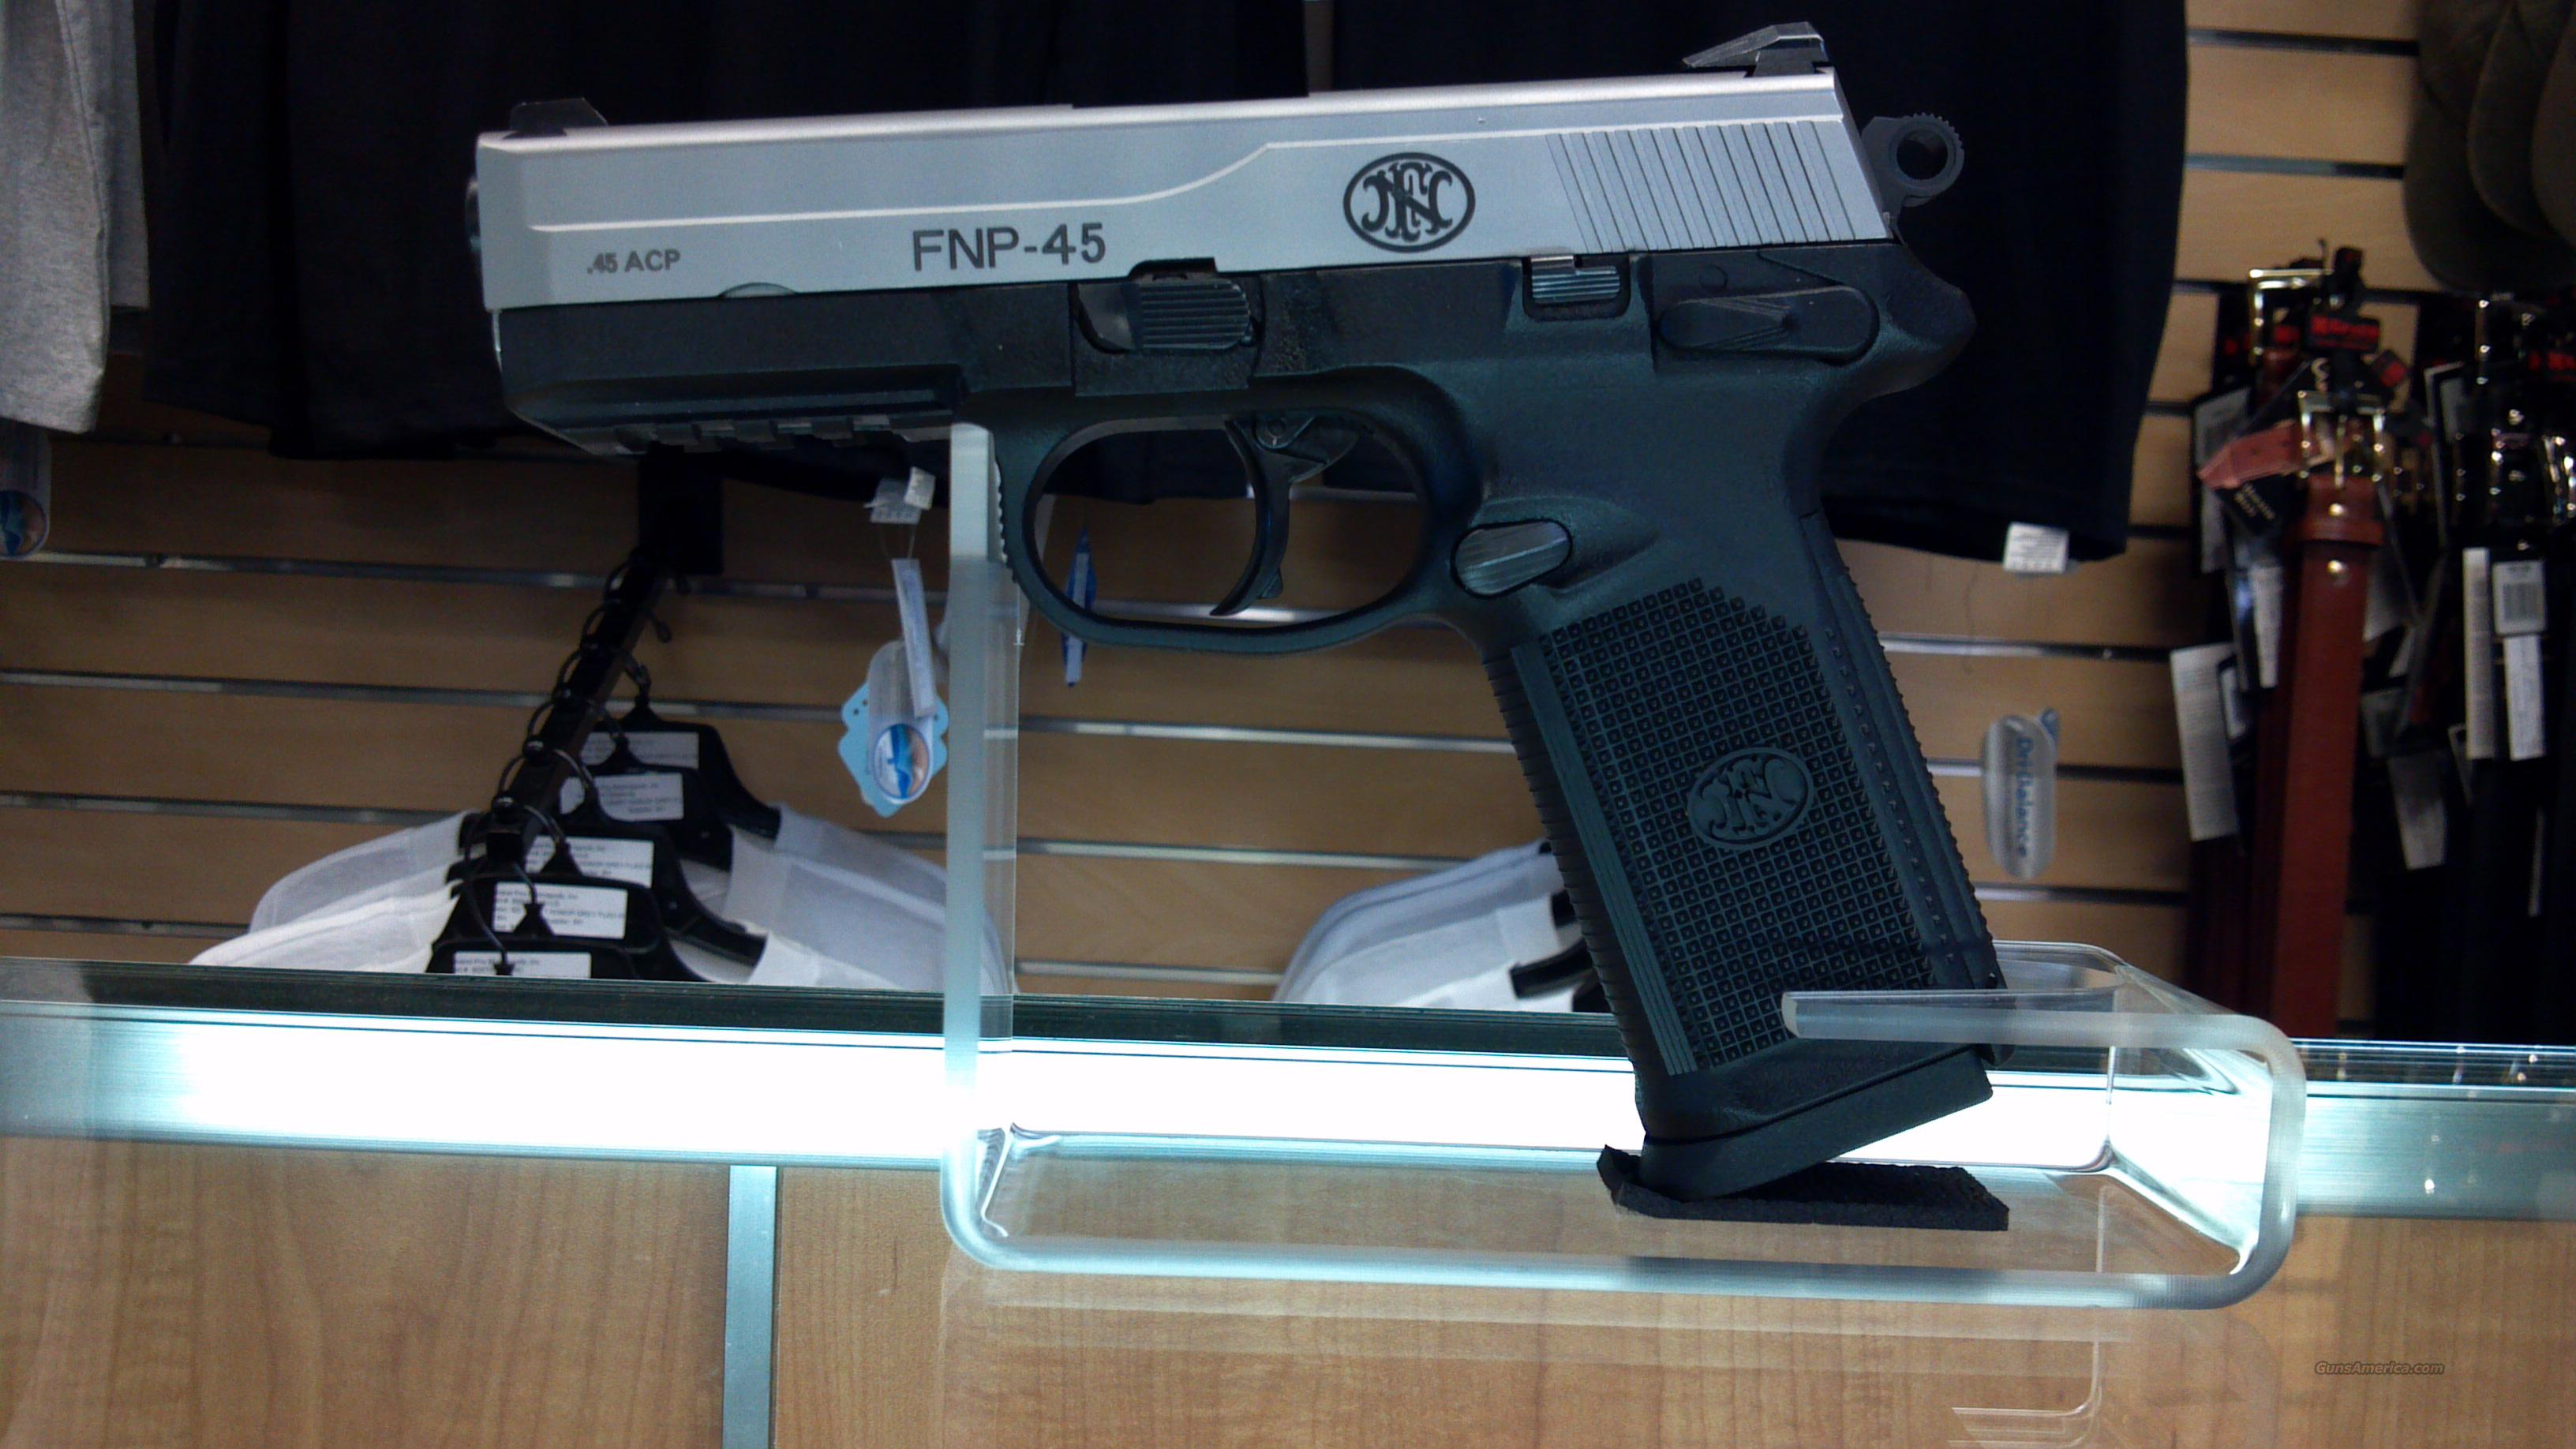 FNH FNP-45 Bi-Tone .45 ACP with 3 Magazines, Box, Holster  Guns > Pistols > FNH - Fabrique Nationale (FN) Pistols > FNP